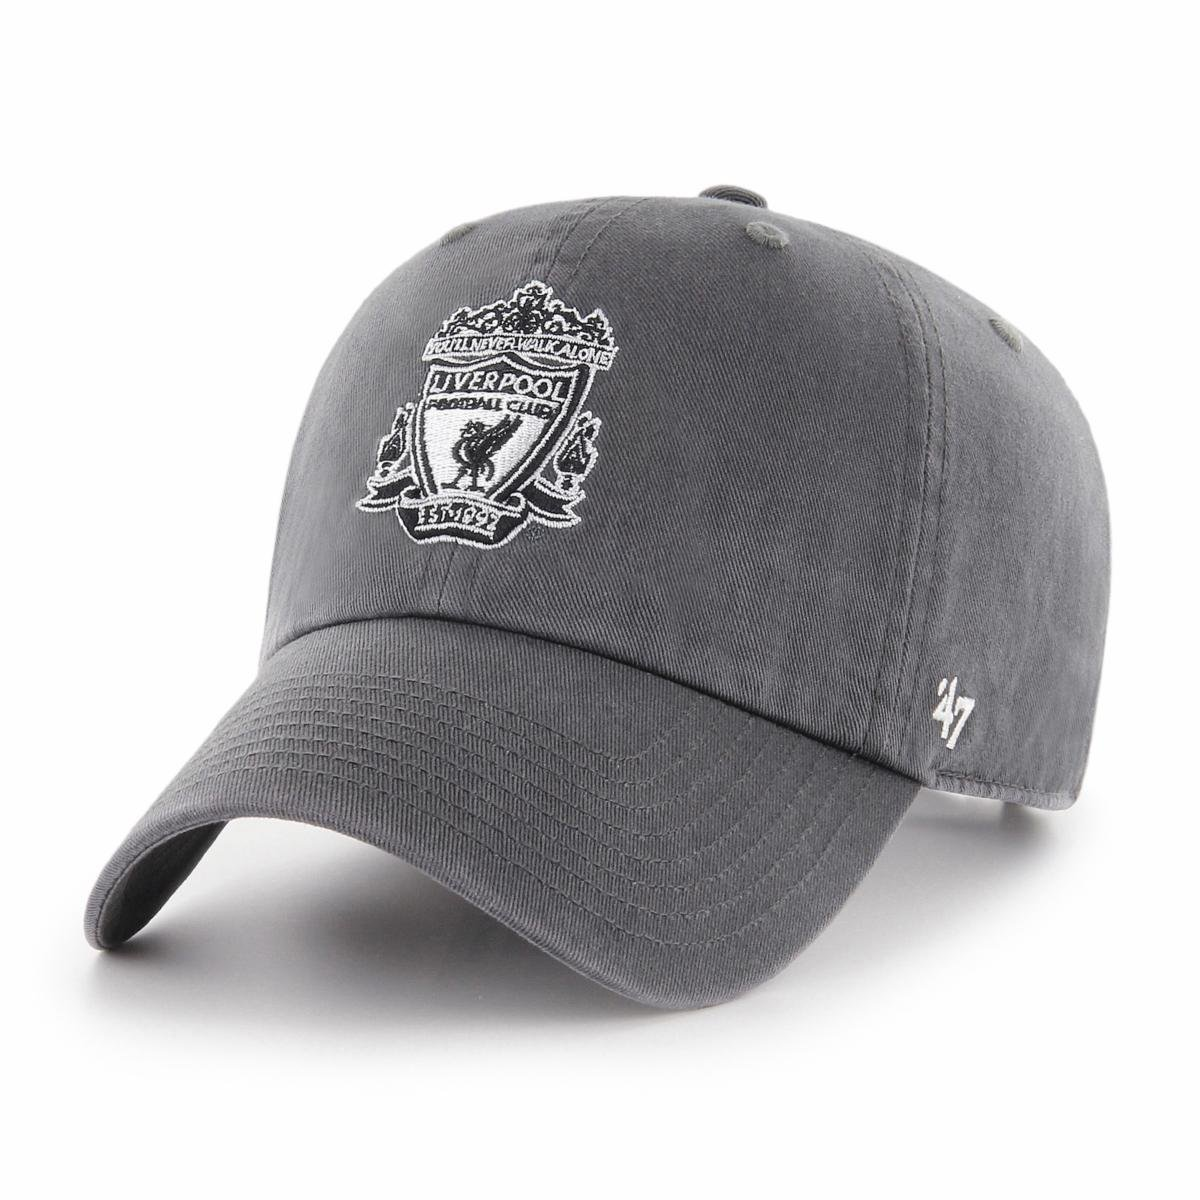 02b9219bd14 47 Brand Relaxed Fit Cap - FC Liverpool charcoal 889313869517